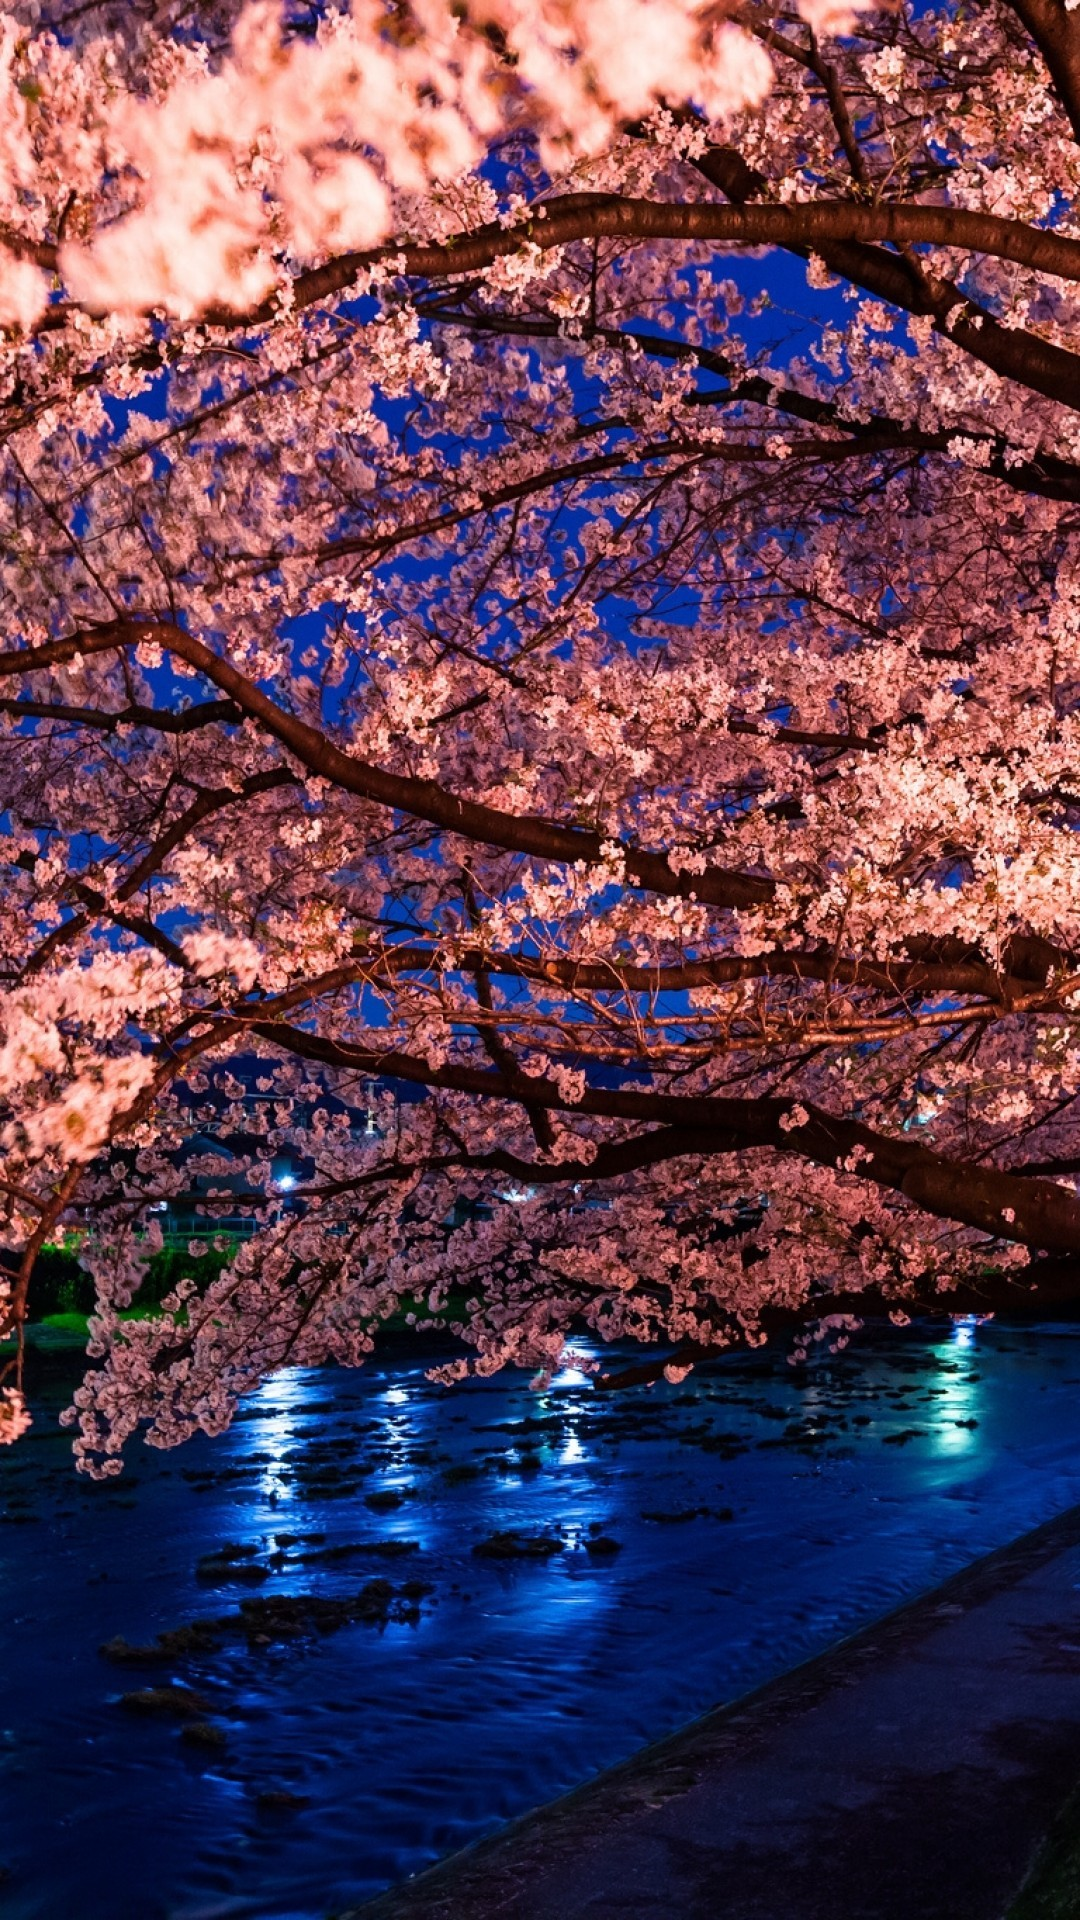 Simple Wallpaper Night Cherry Blossom - 469659  Perfect Image Reference.jpg